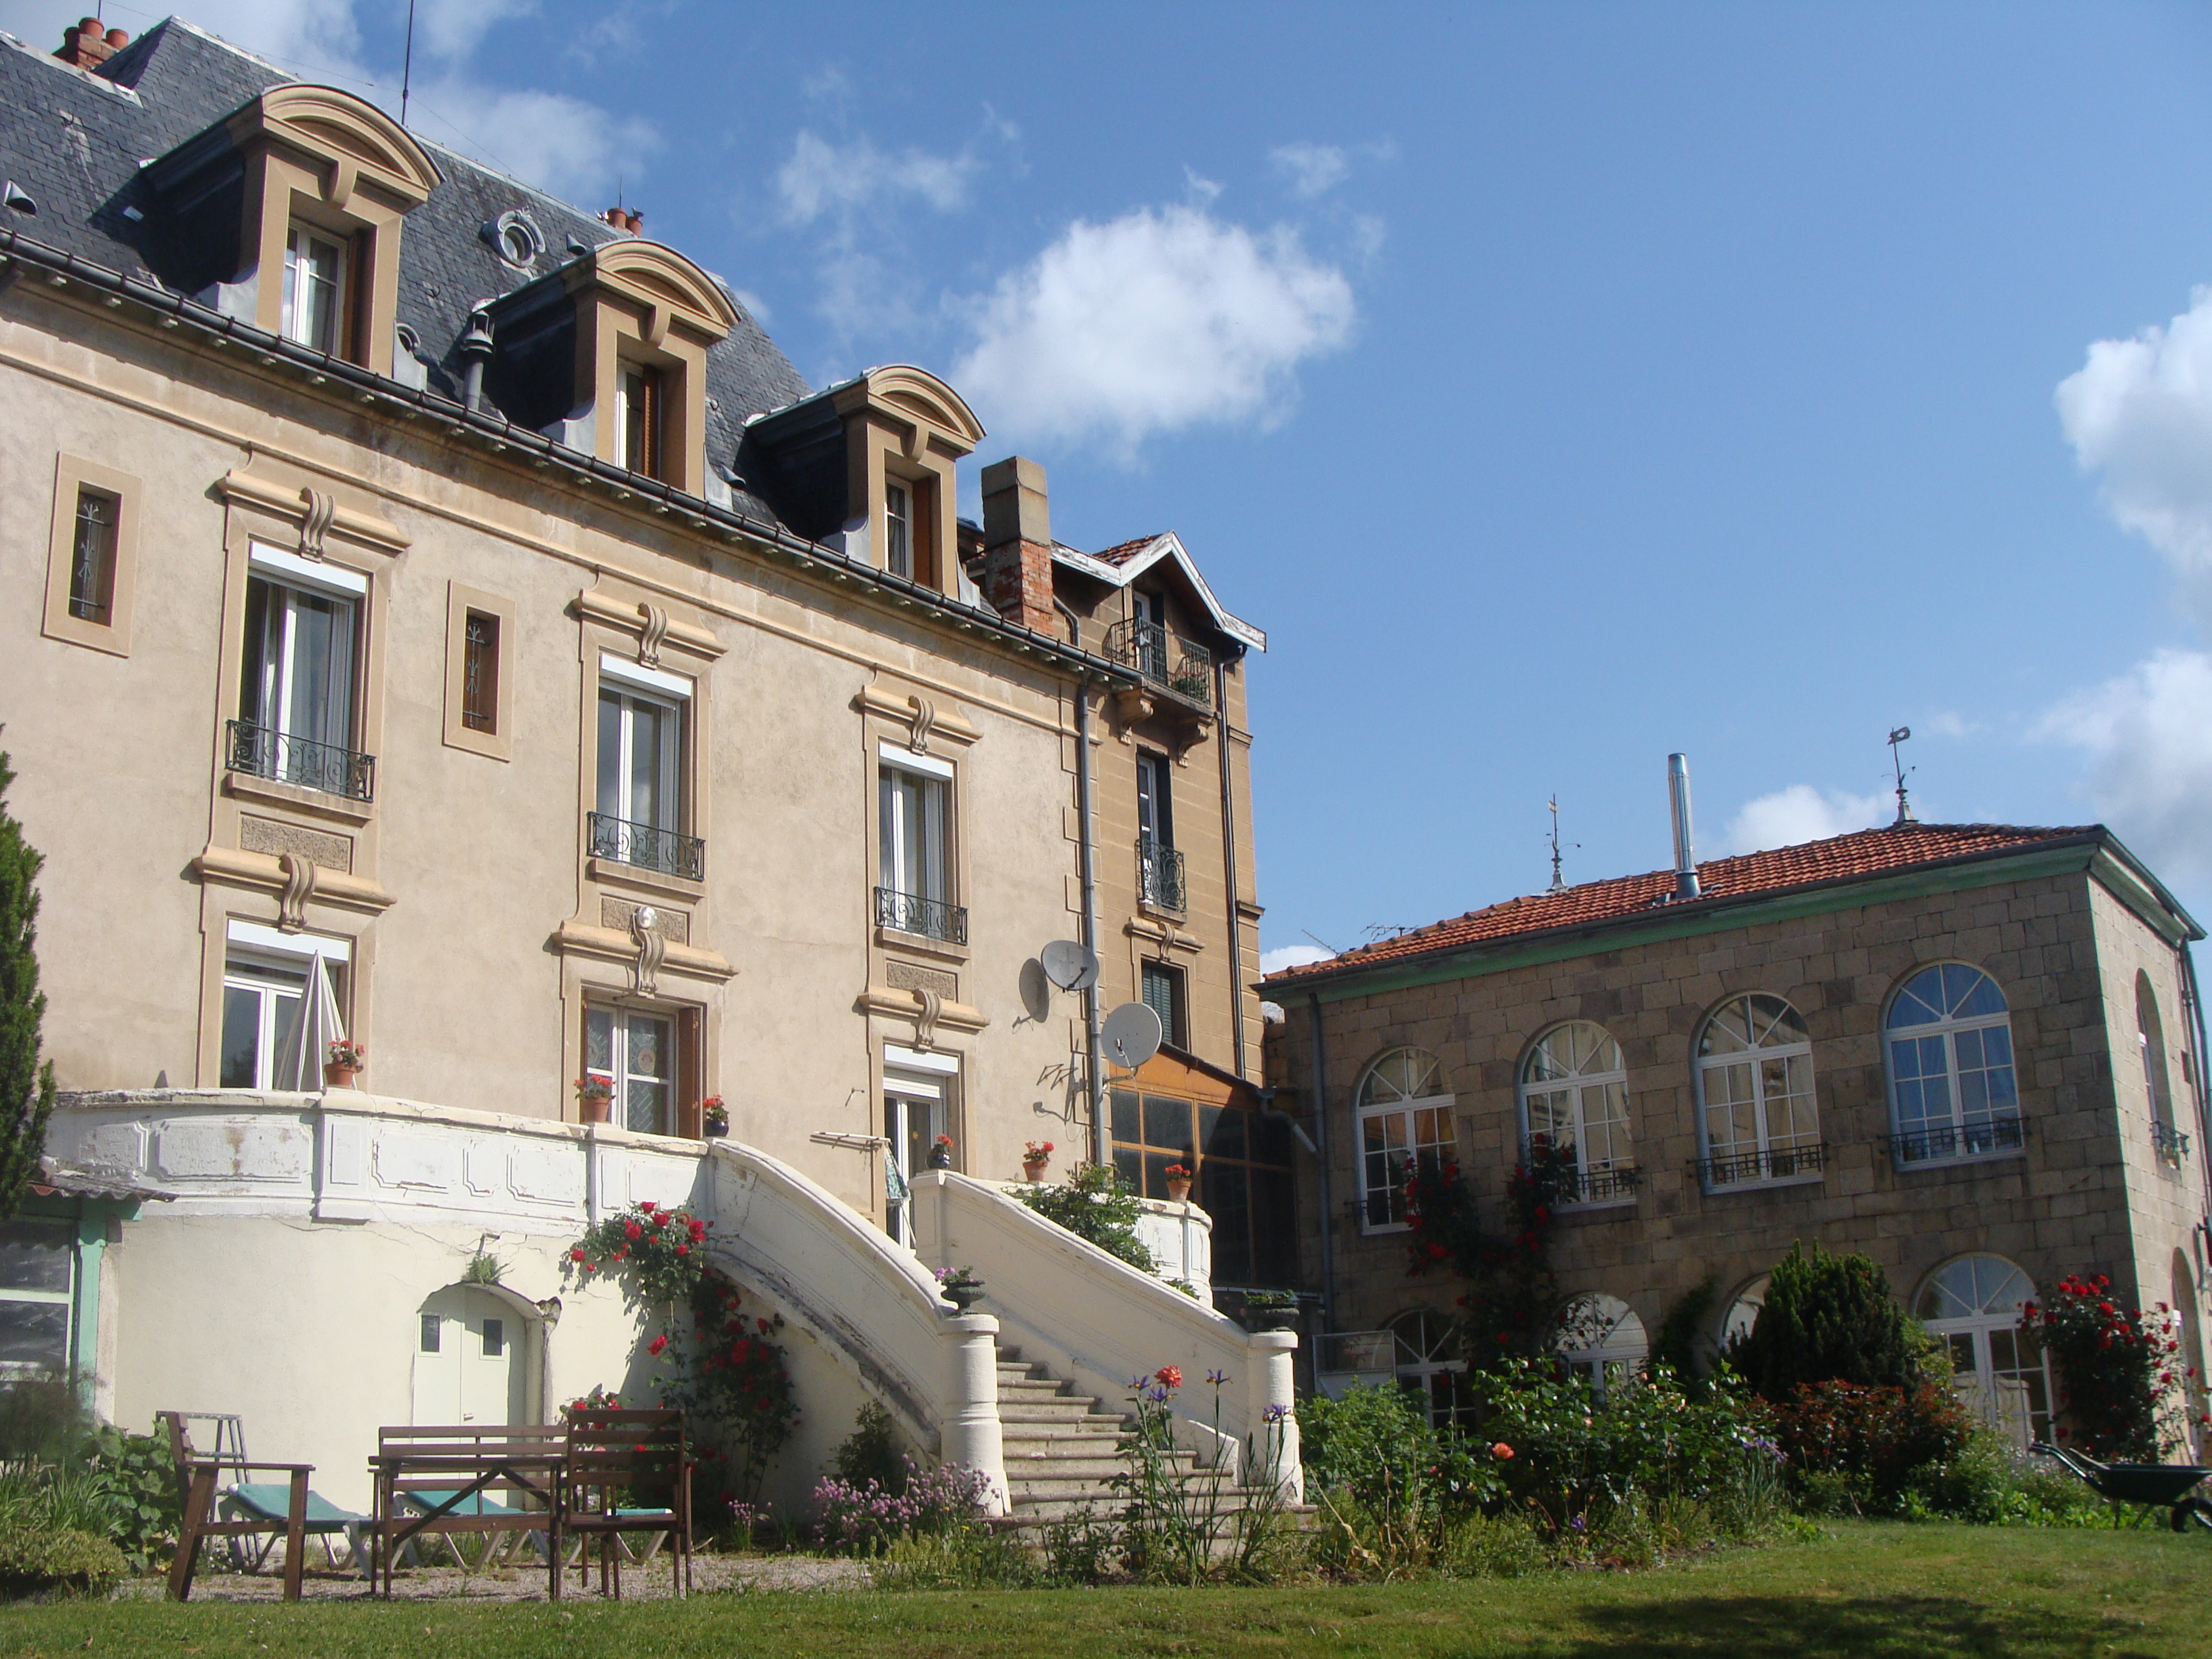 View of the Château and Orangery